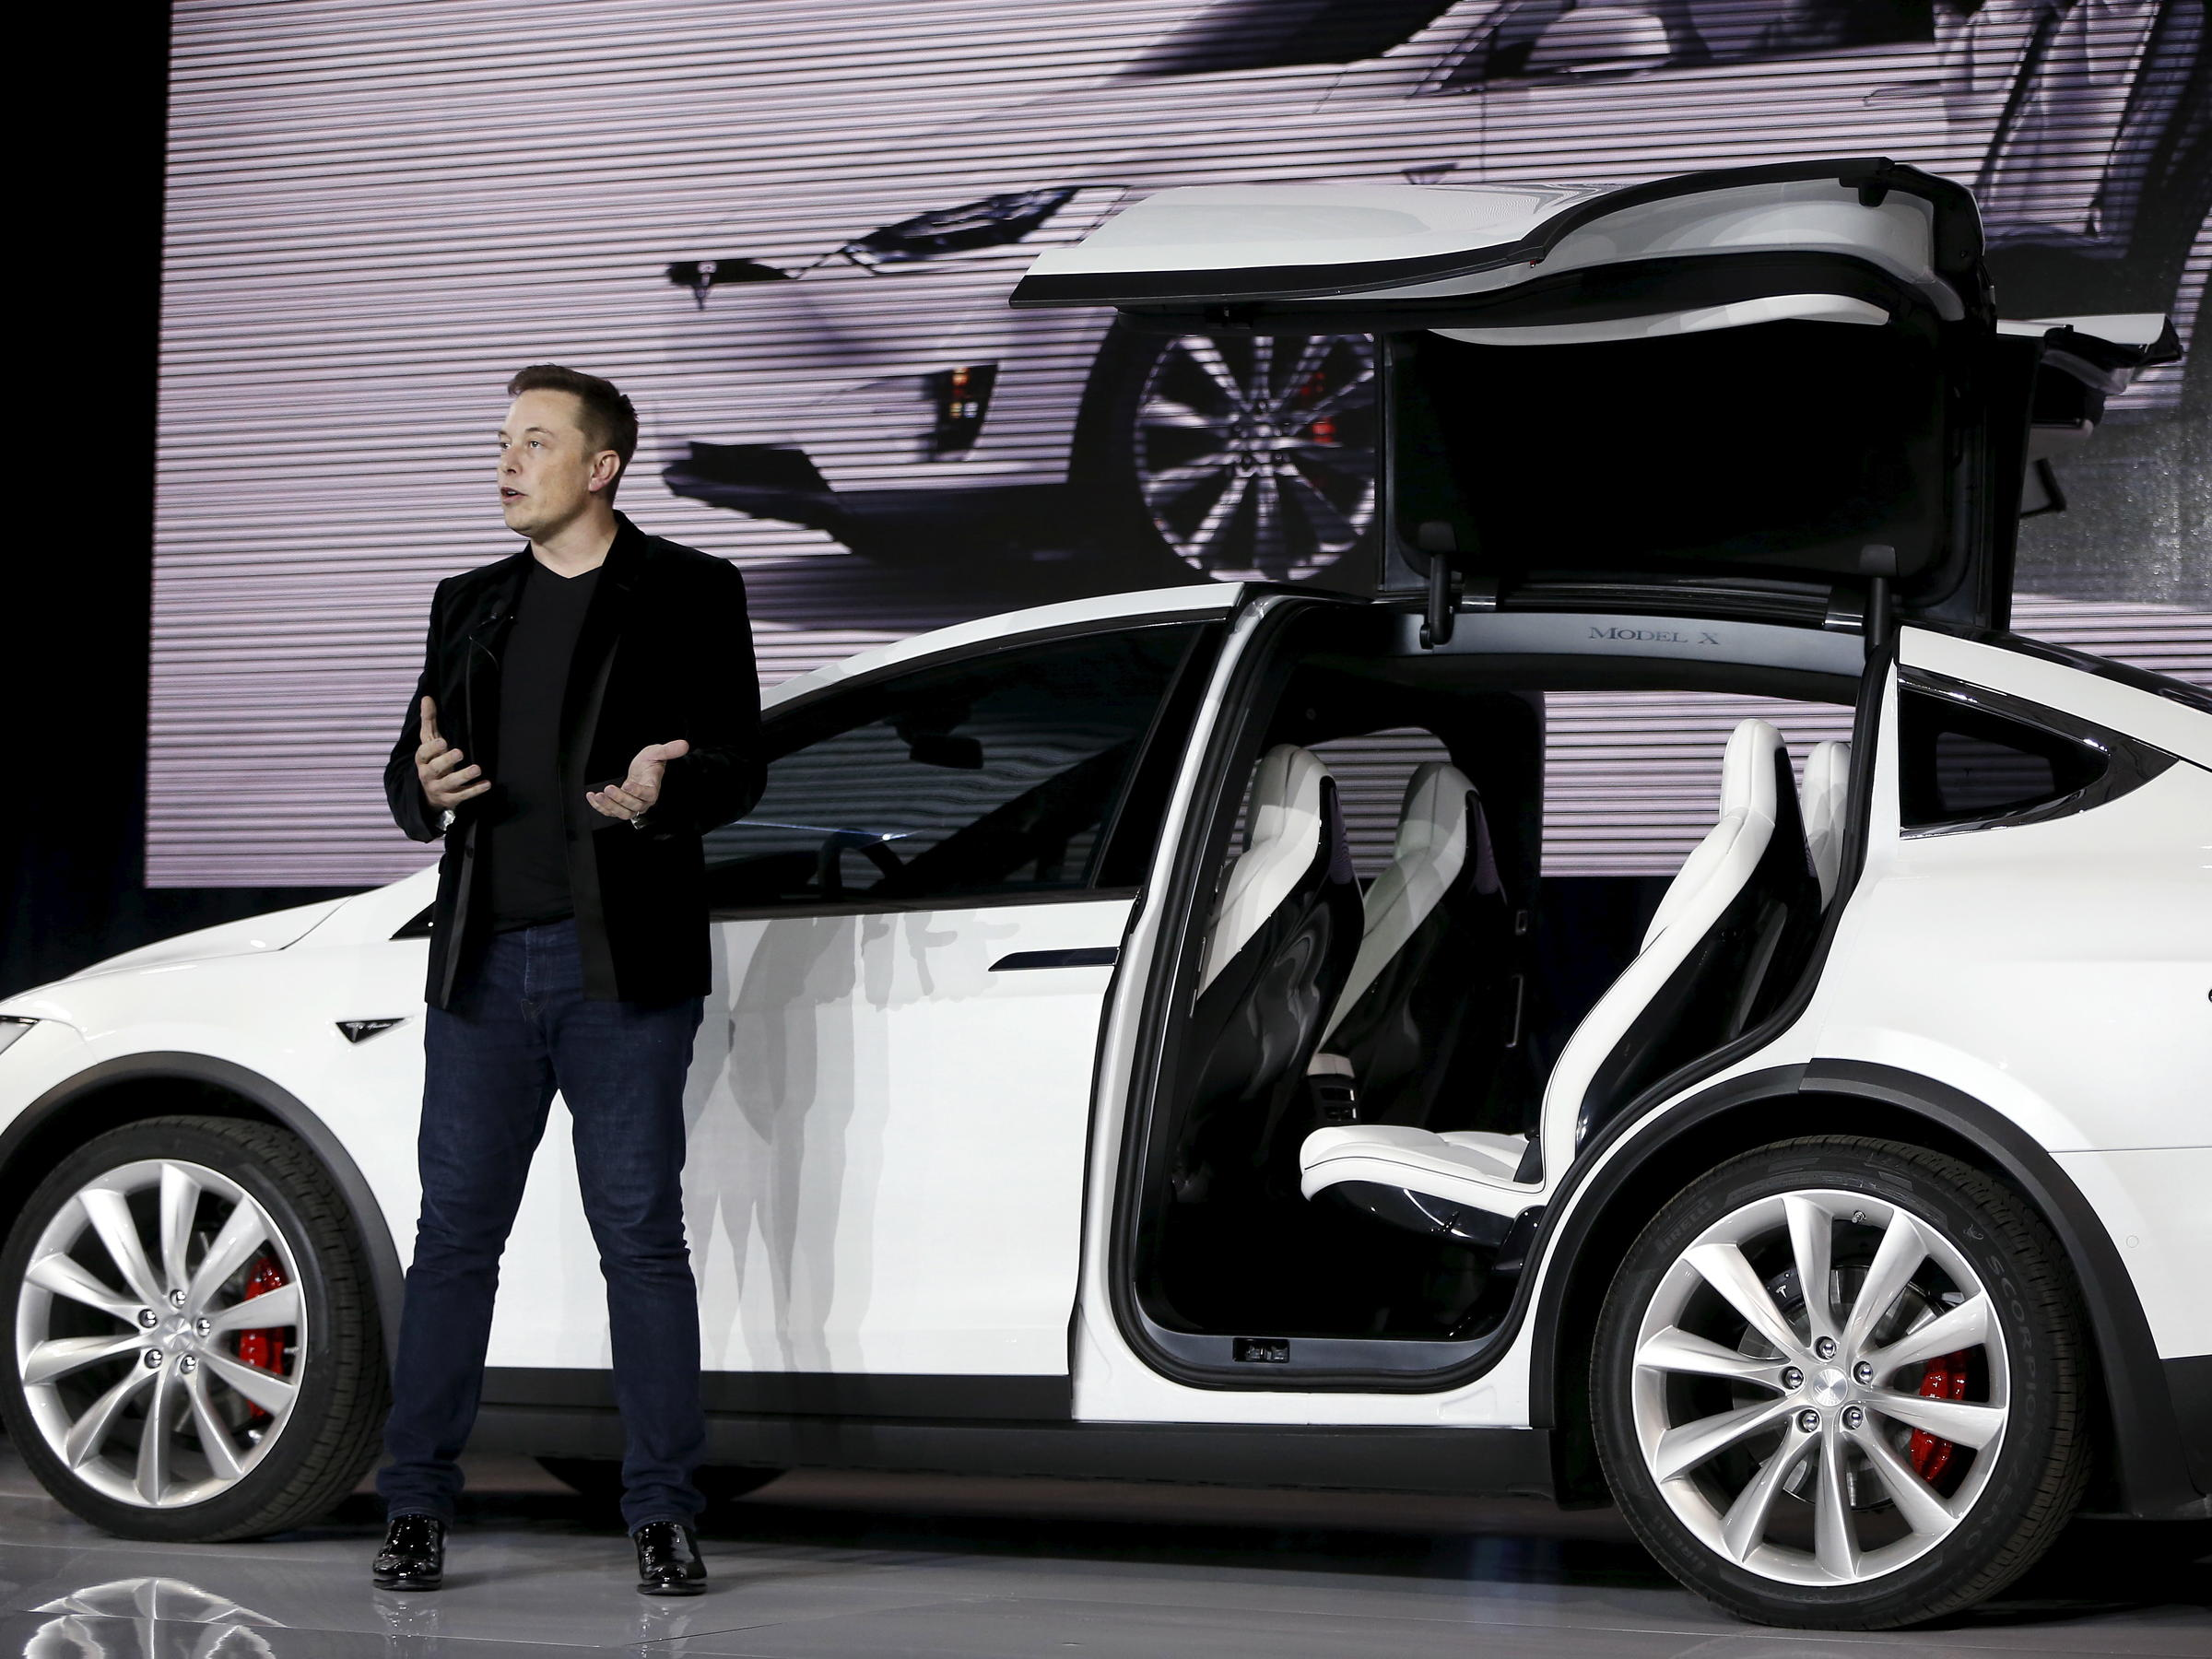 8 Years After Going Public Elon Musk Wants To Take Tesla Private